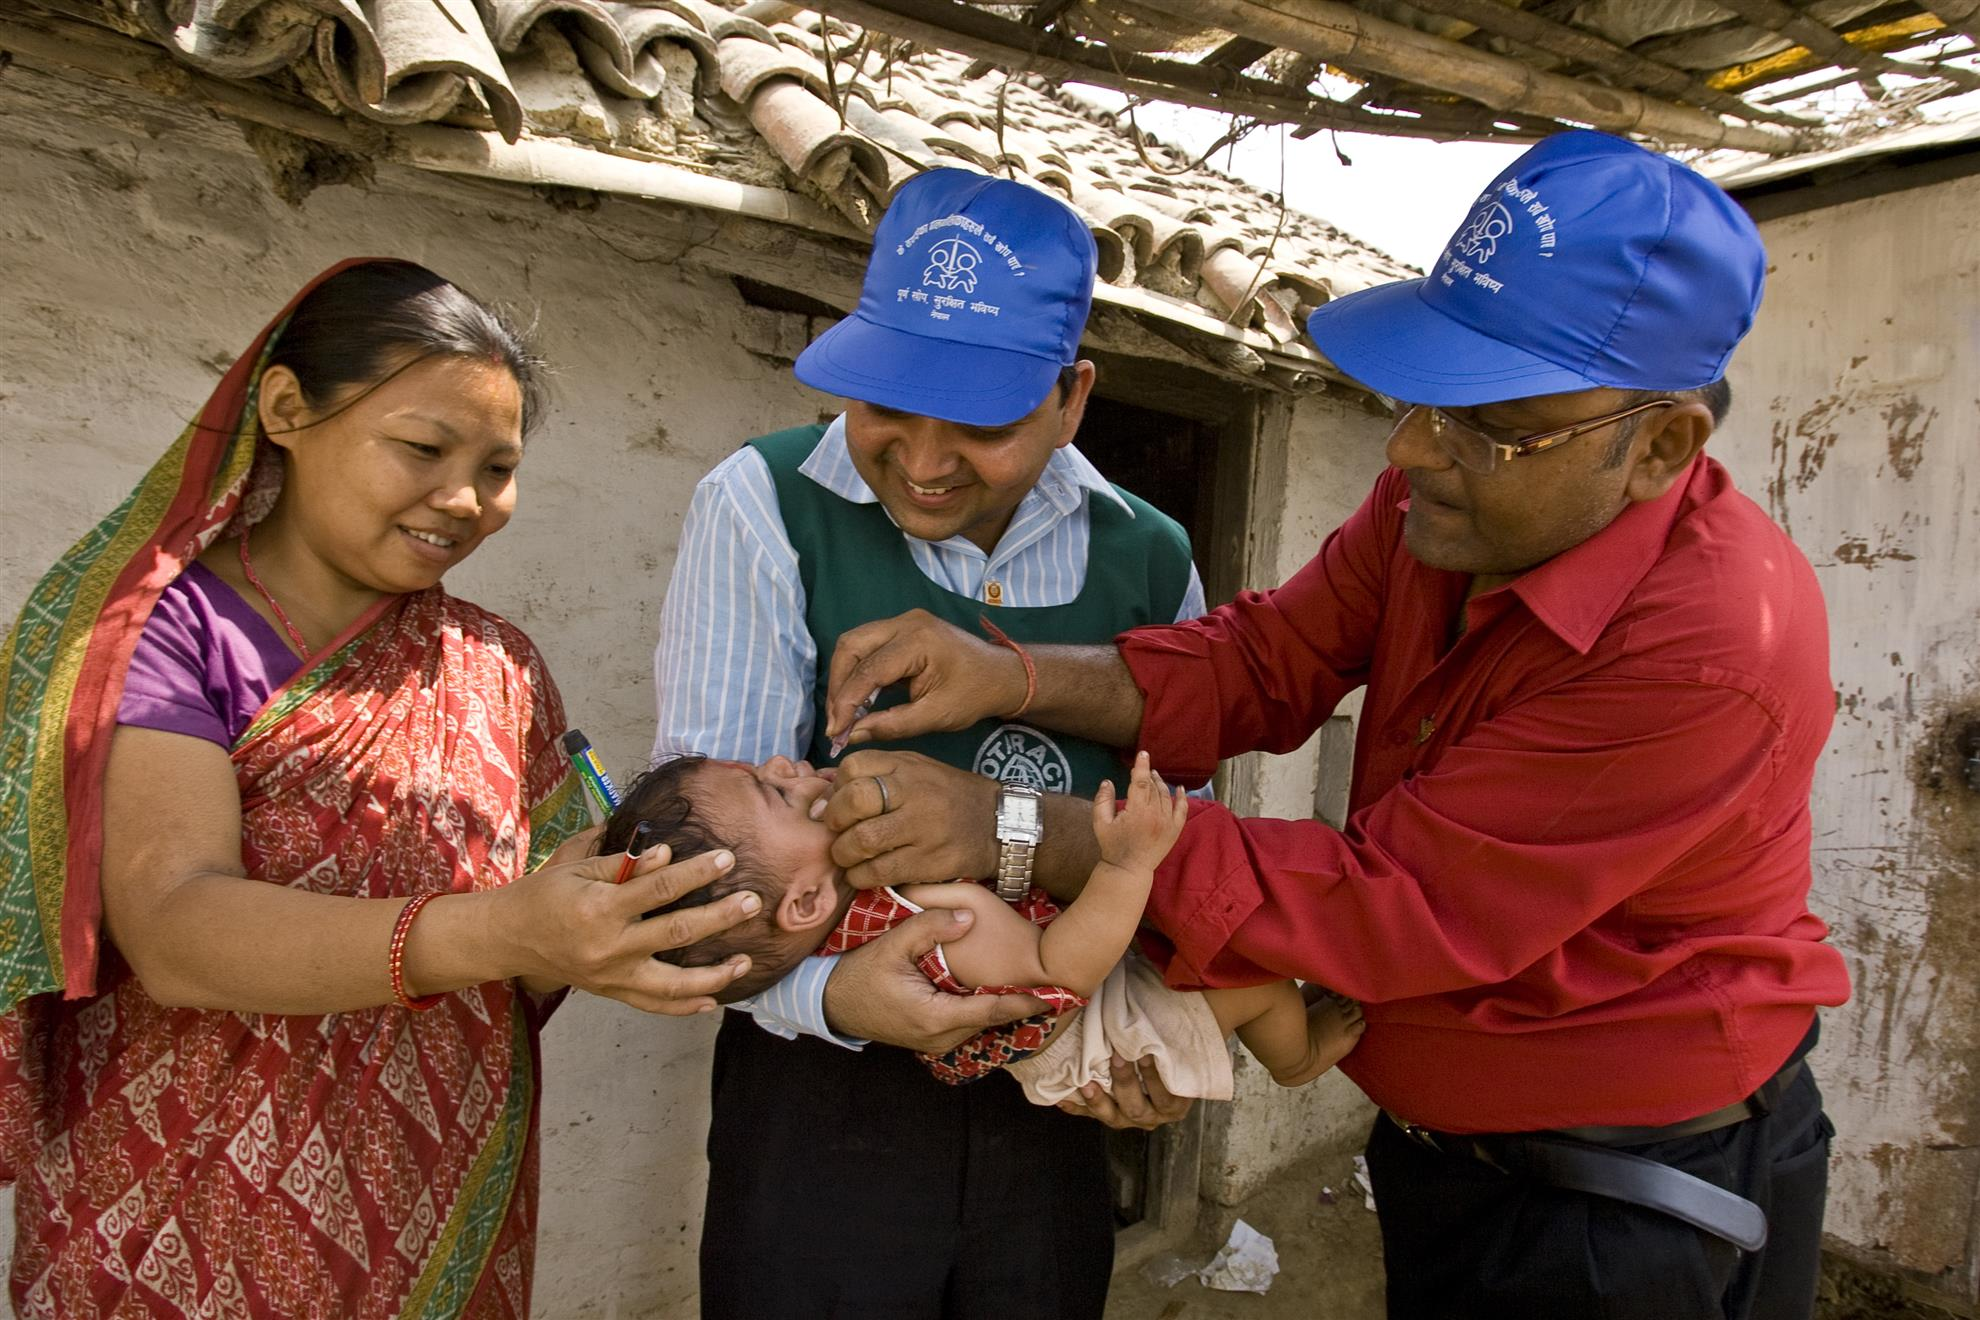 Polio is a crippling and potentially deadly infectious disease caused by the poliovirus.